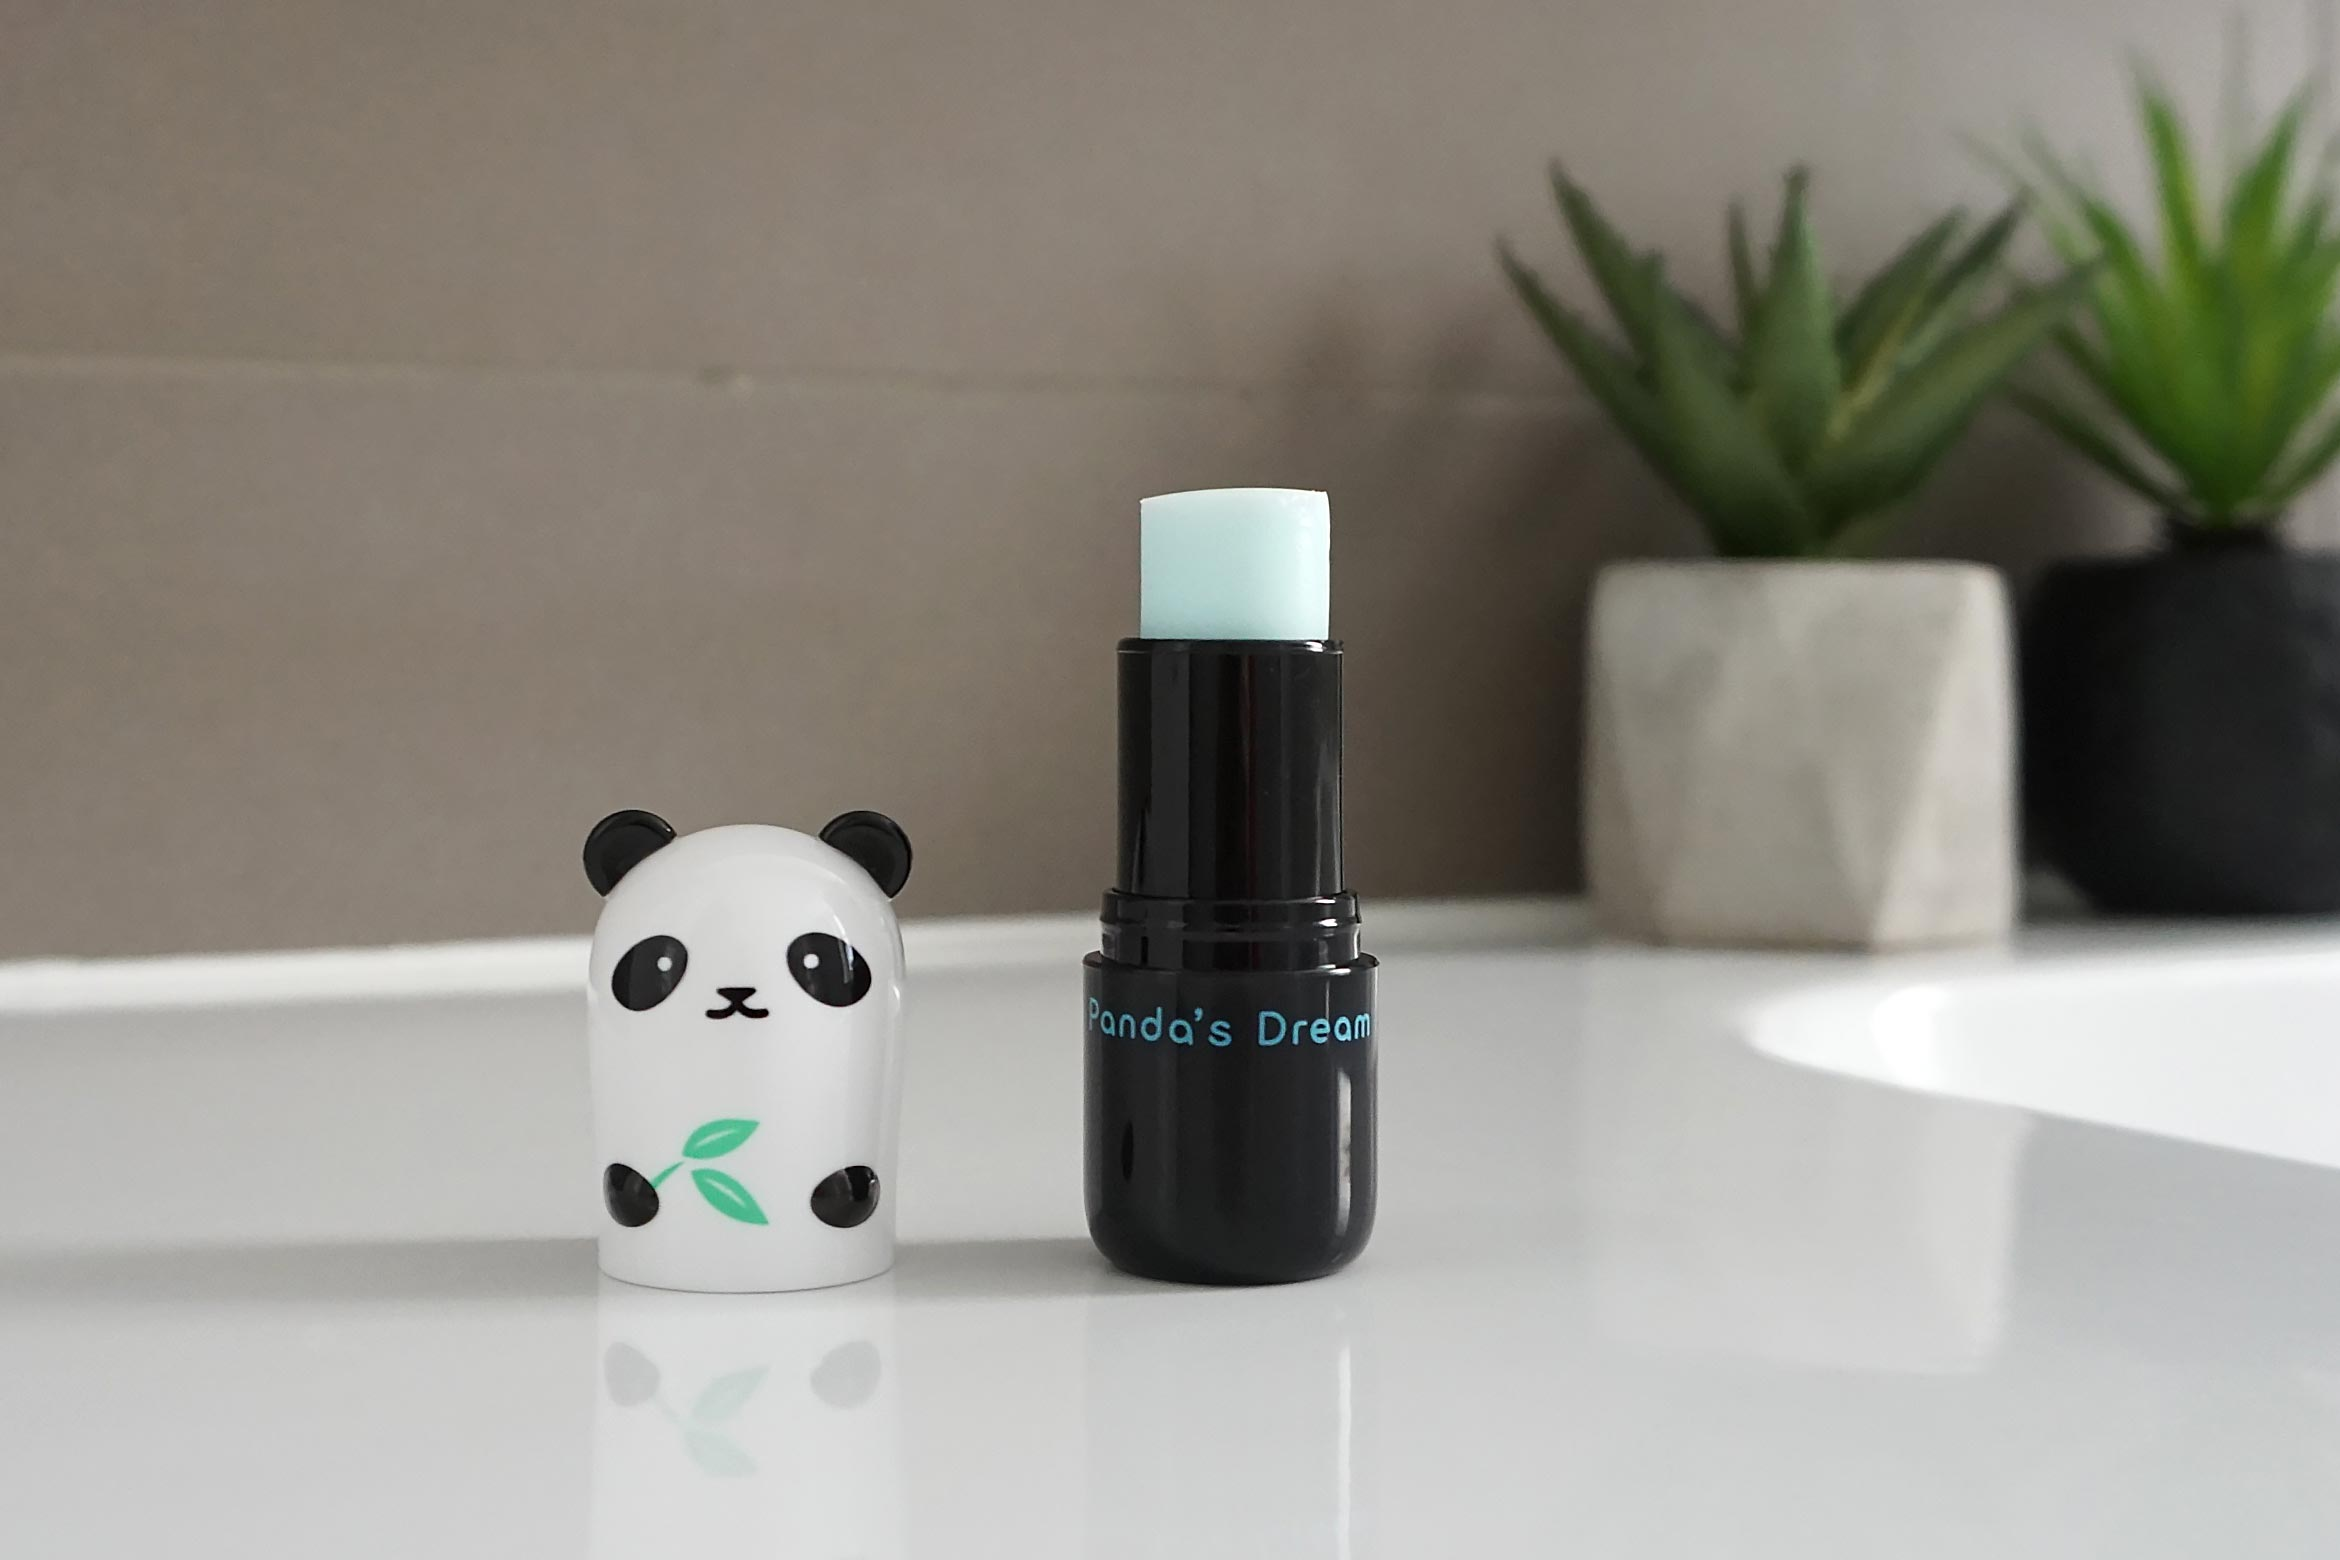 tonymoly-panda's-dream-so-cool-eye-stick-review-1